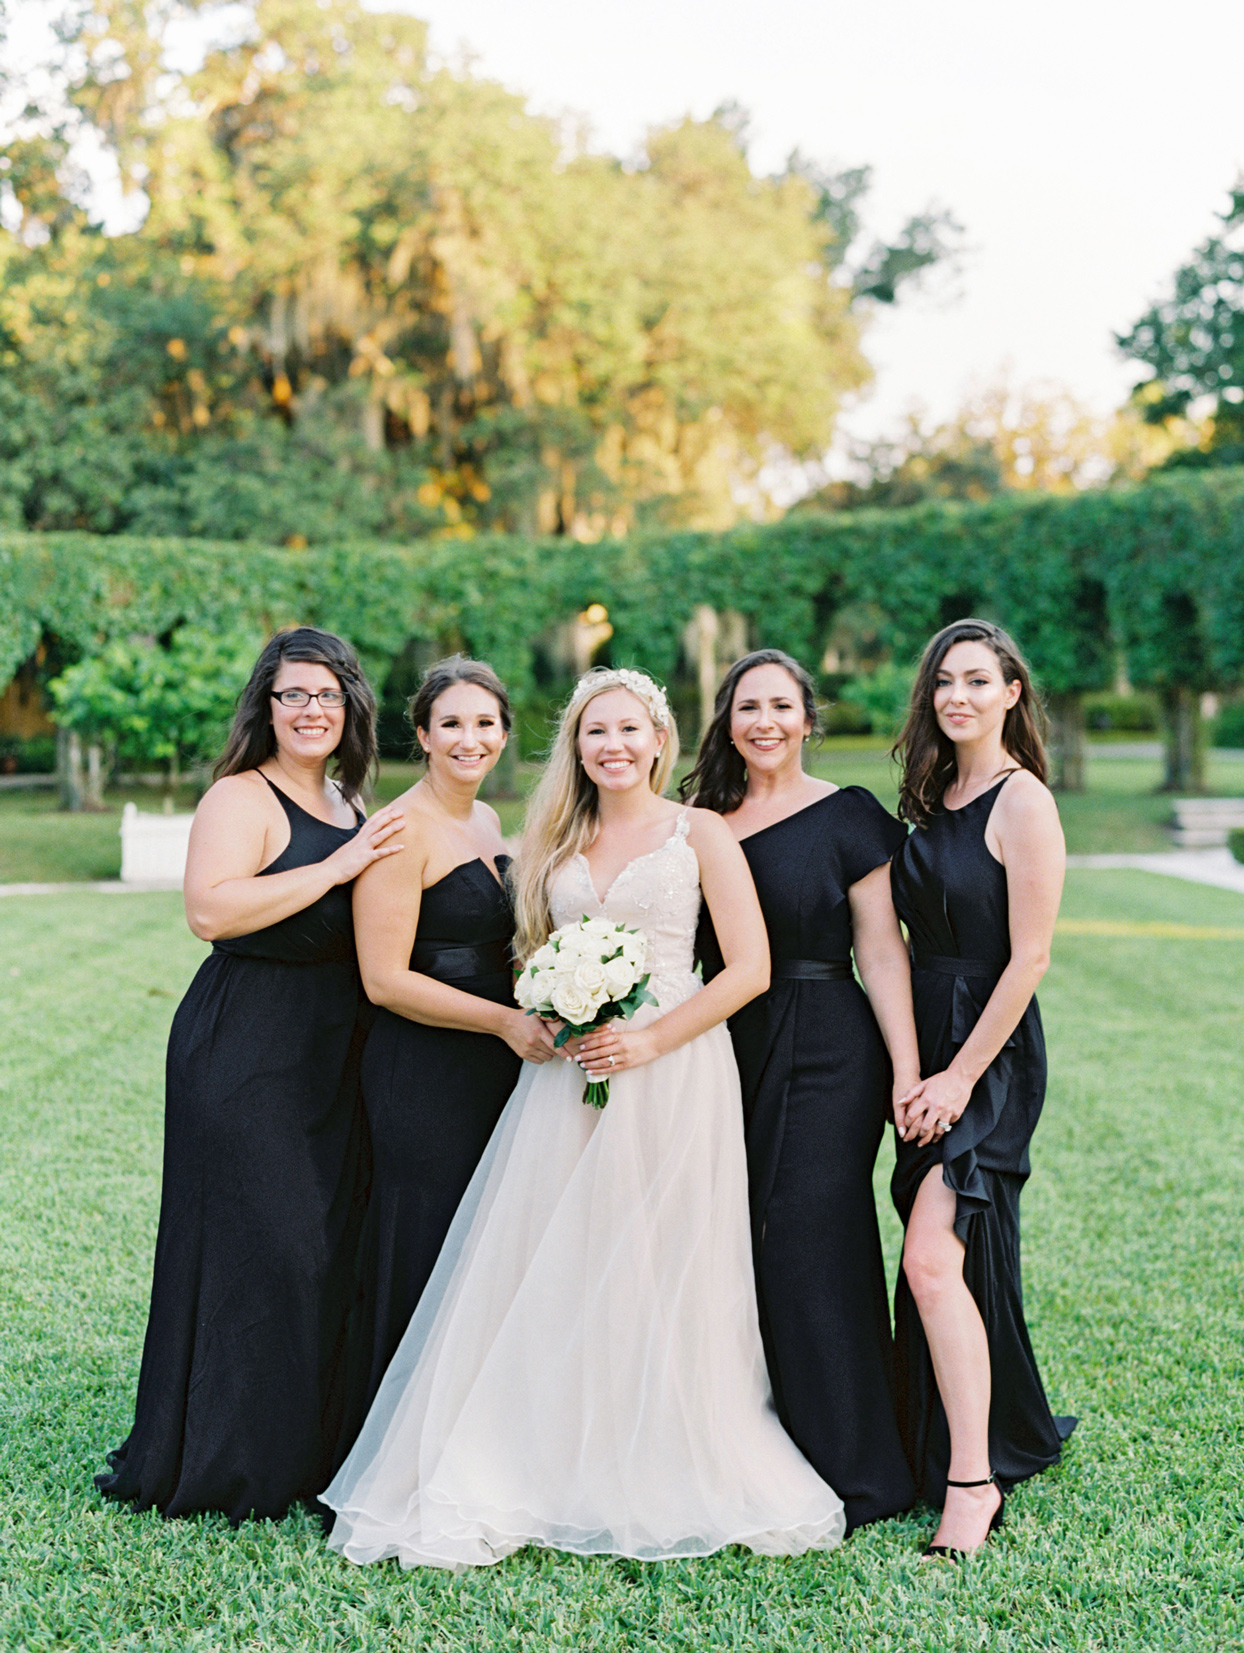 bride with bridesmaids in mismatched black dresses